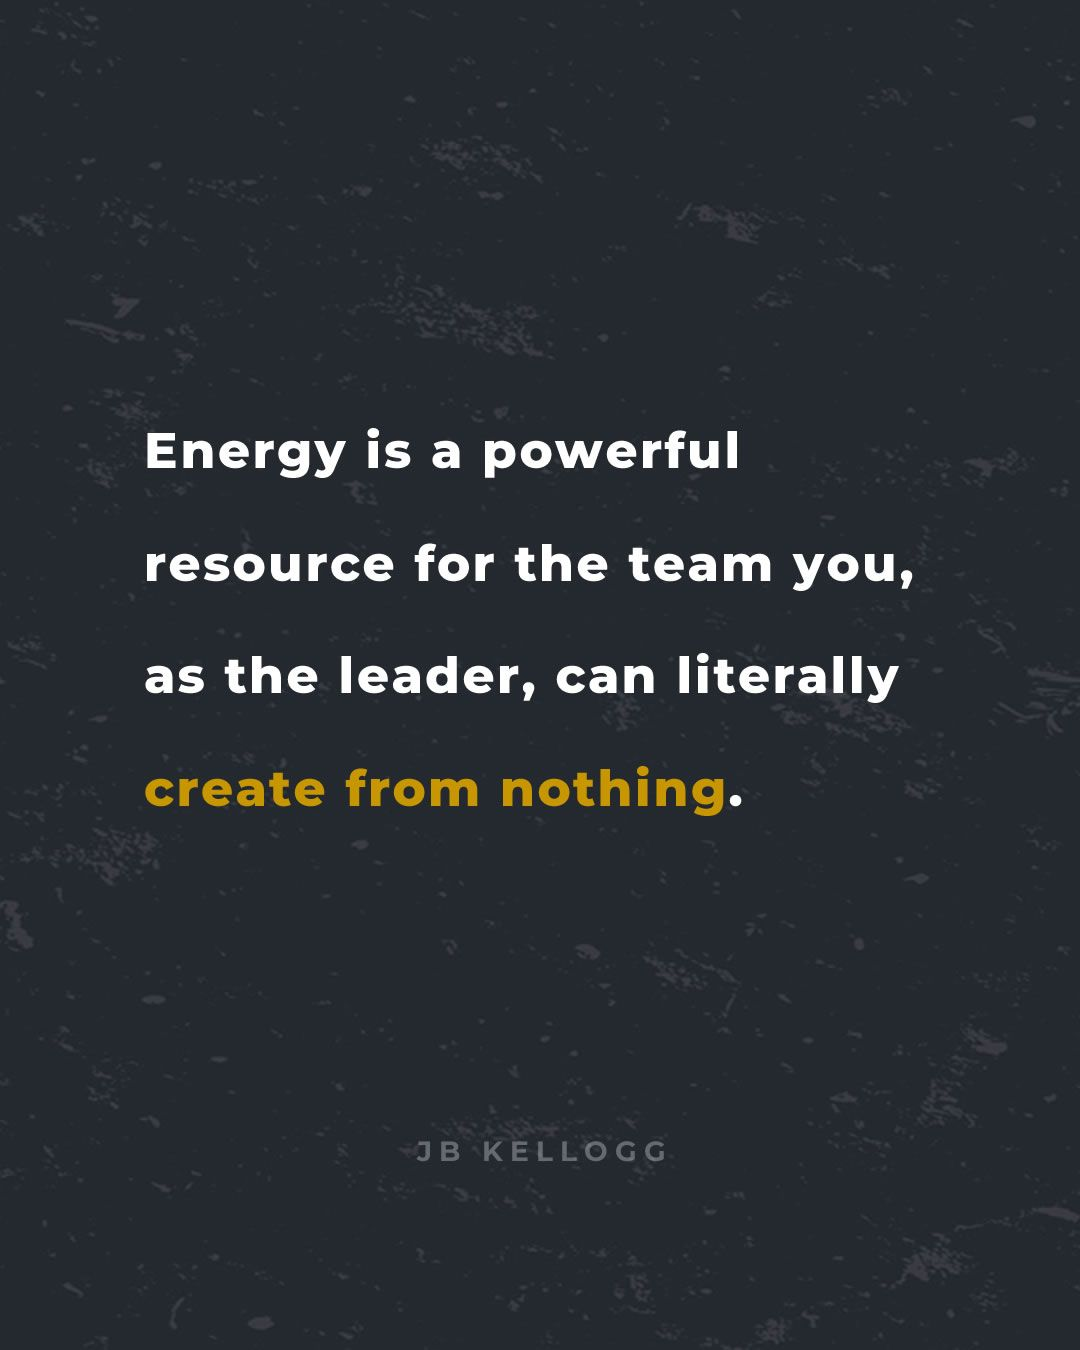 energy is something you, as the leader, can create from nothing. - quote by jb kellogg.jpg